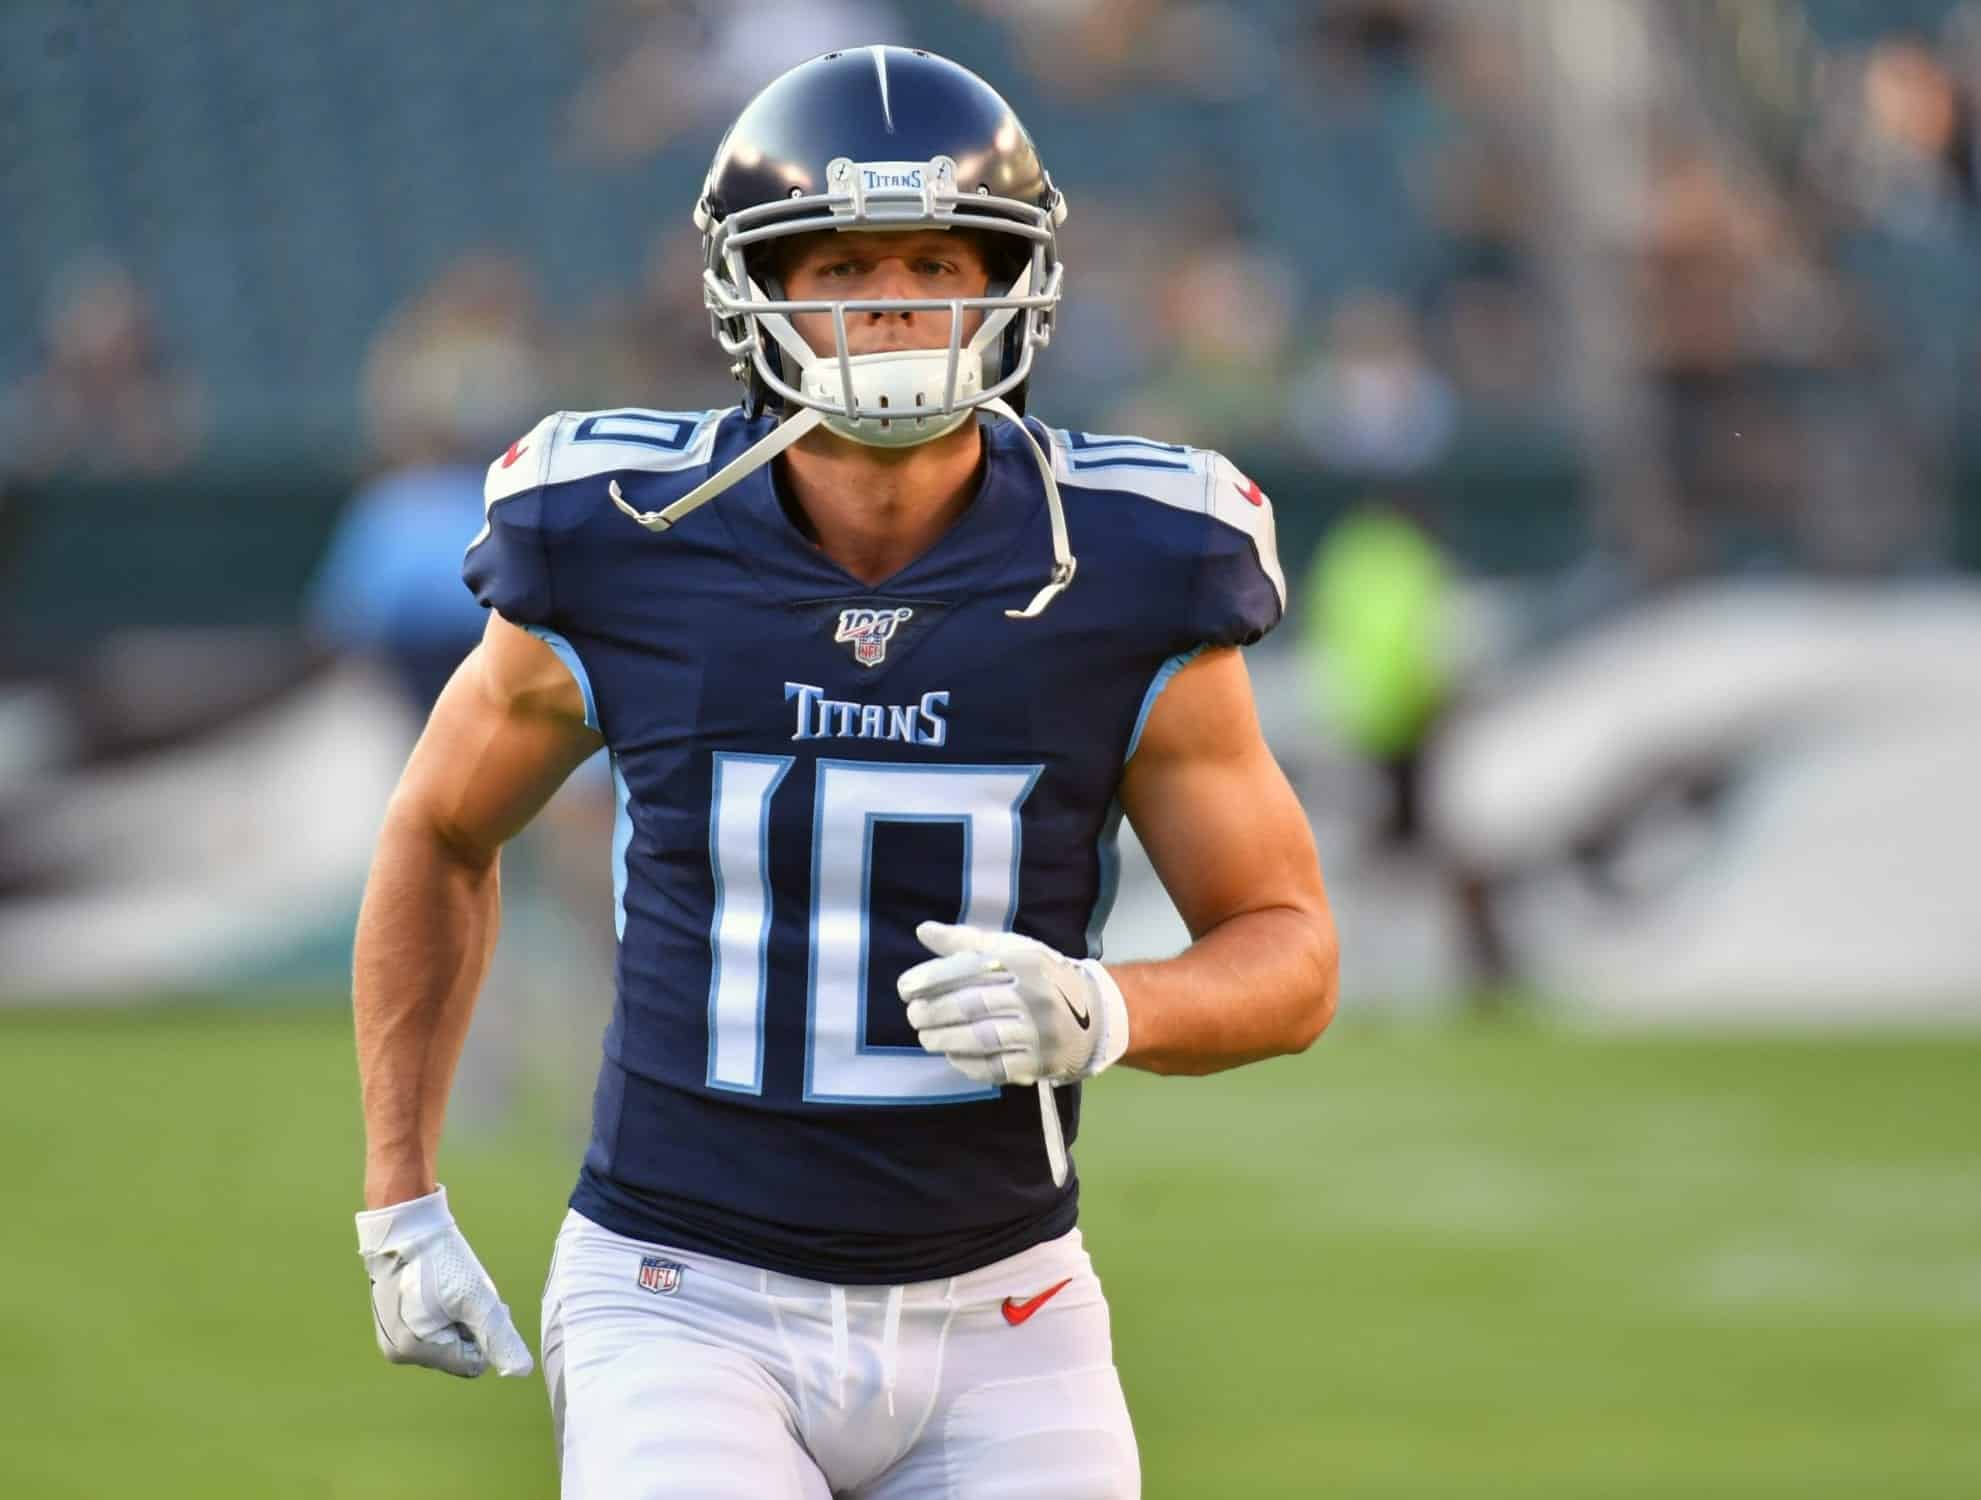 TitanTitans wide receiver Adam Humphries deserves a bigger role in 2020s wide receiver Adam Humphries